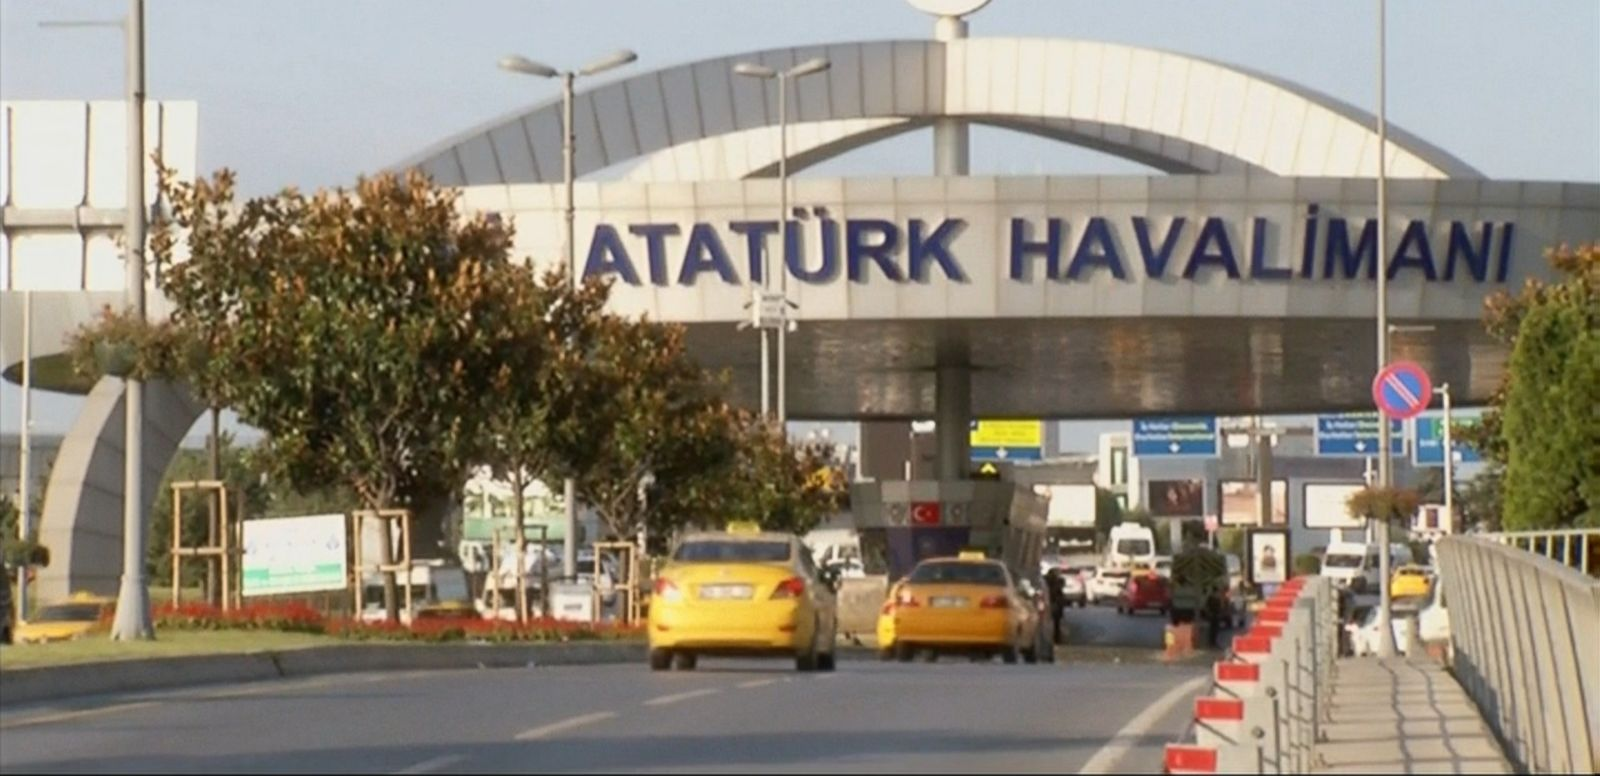 VIDEO: Turkey's Prime Minister says the airport attackers that killed dozens Tuesday night were likely connected ISIS.